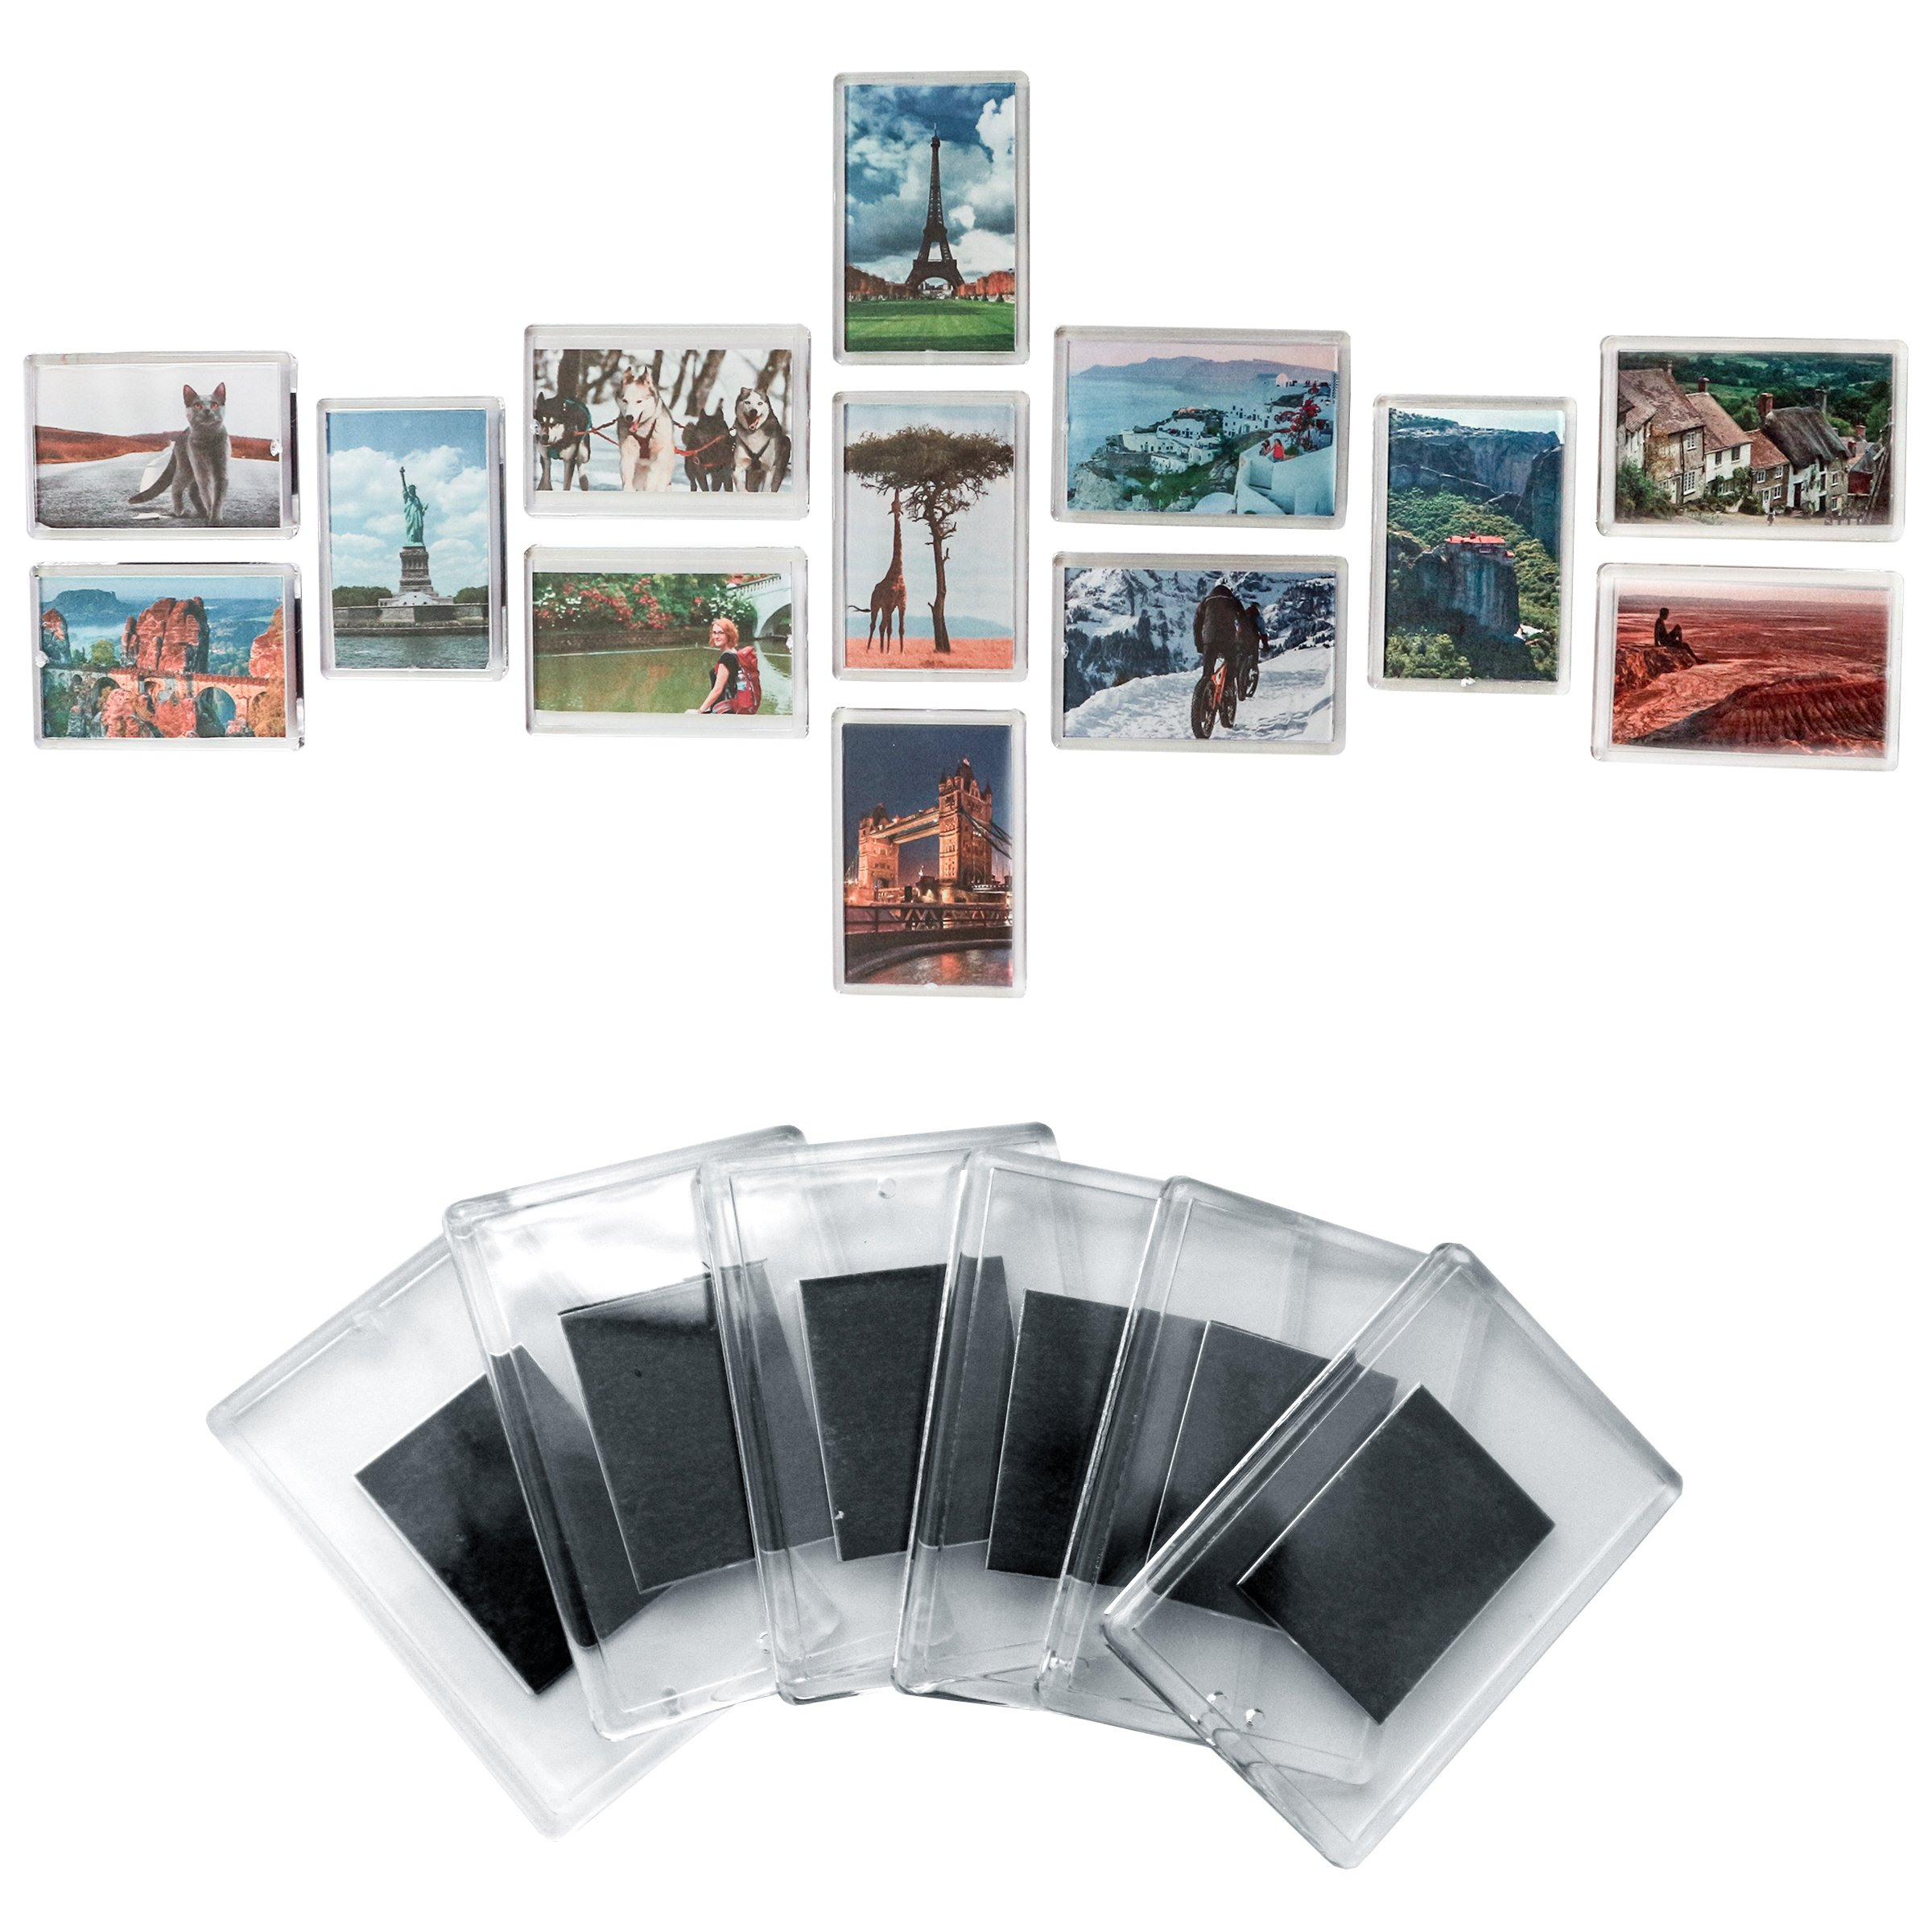 Make your own fridge magnets amazon set of 20 blank photo frame fridge magnets by kurtzy clear acrylic refrigerator magnet with reheart Images